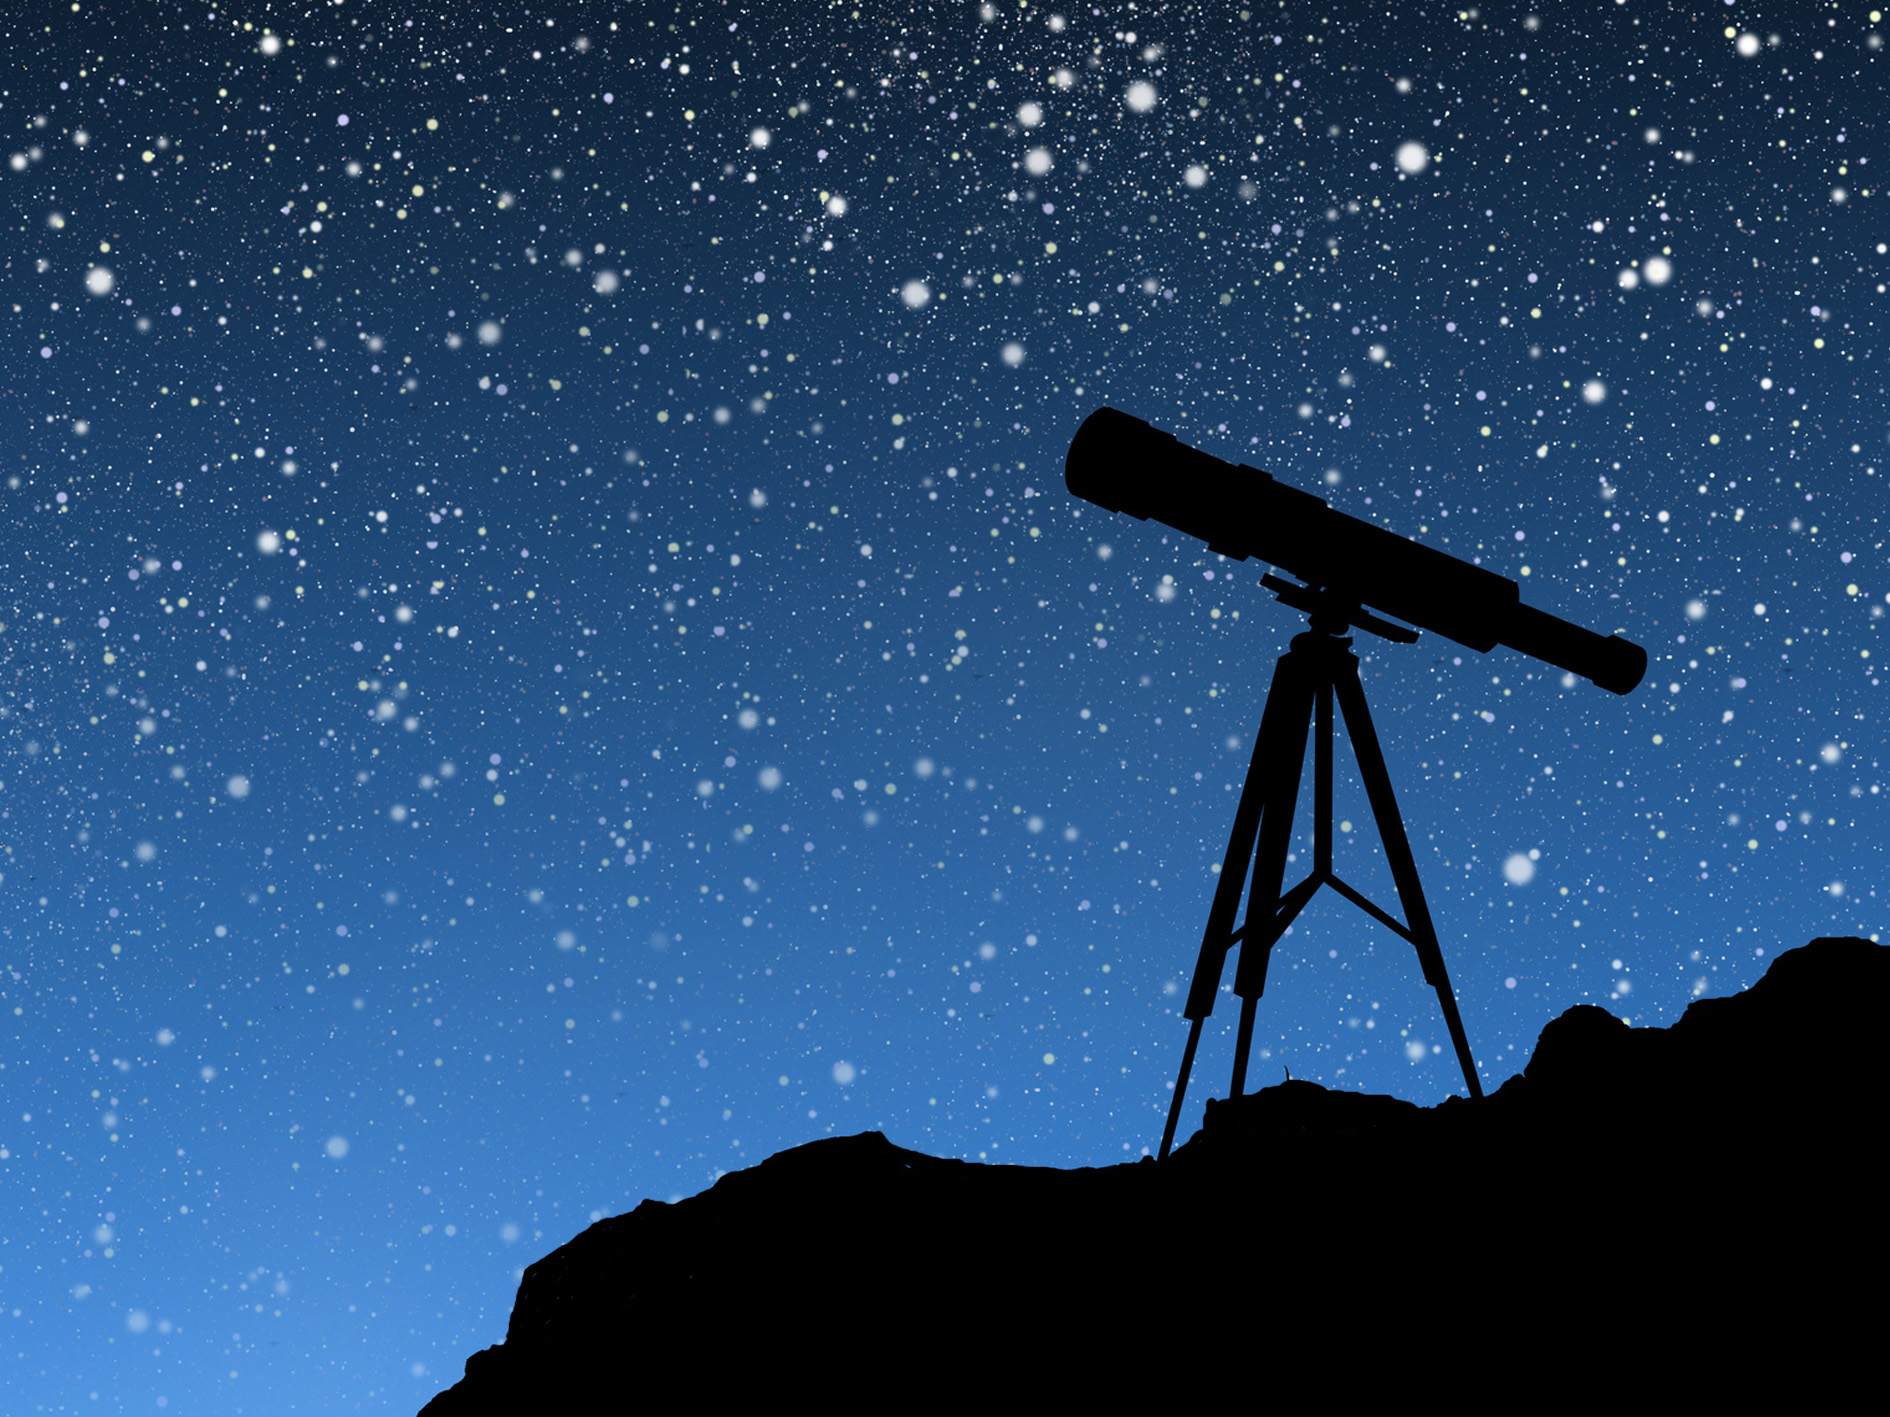 Astronomy clipart stargazing. Sunset storytelling and on